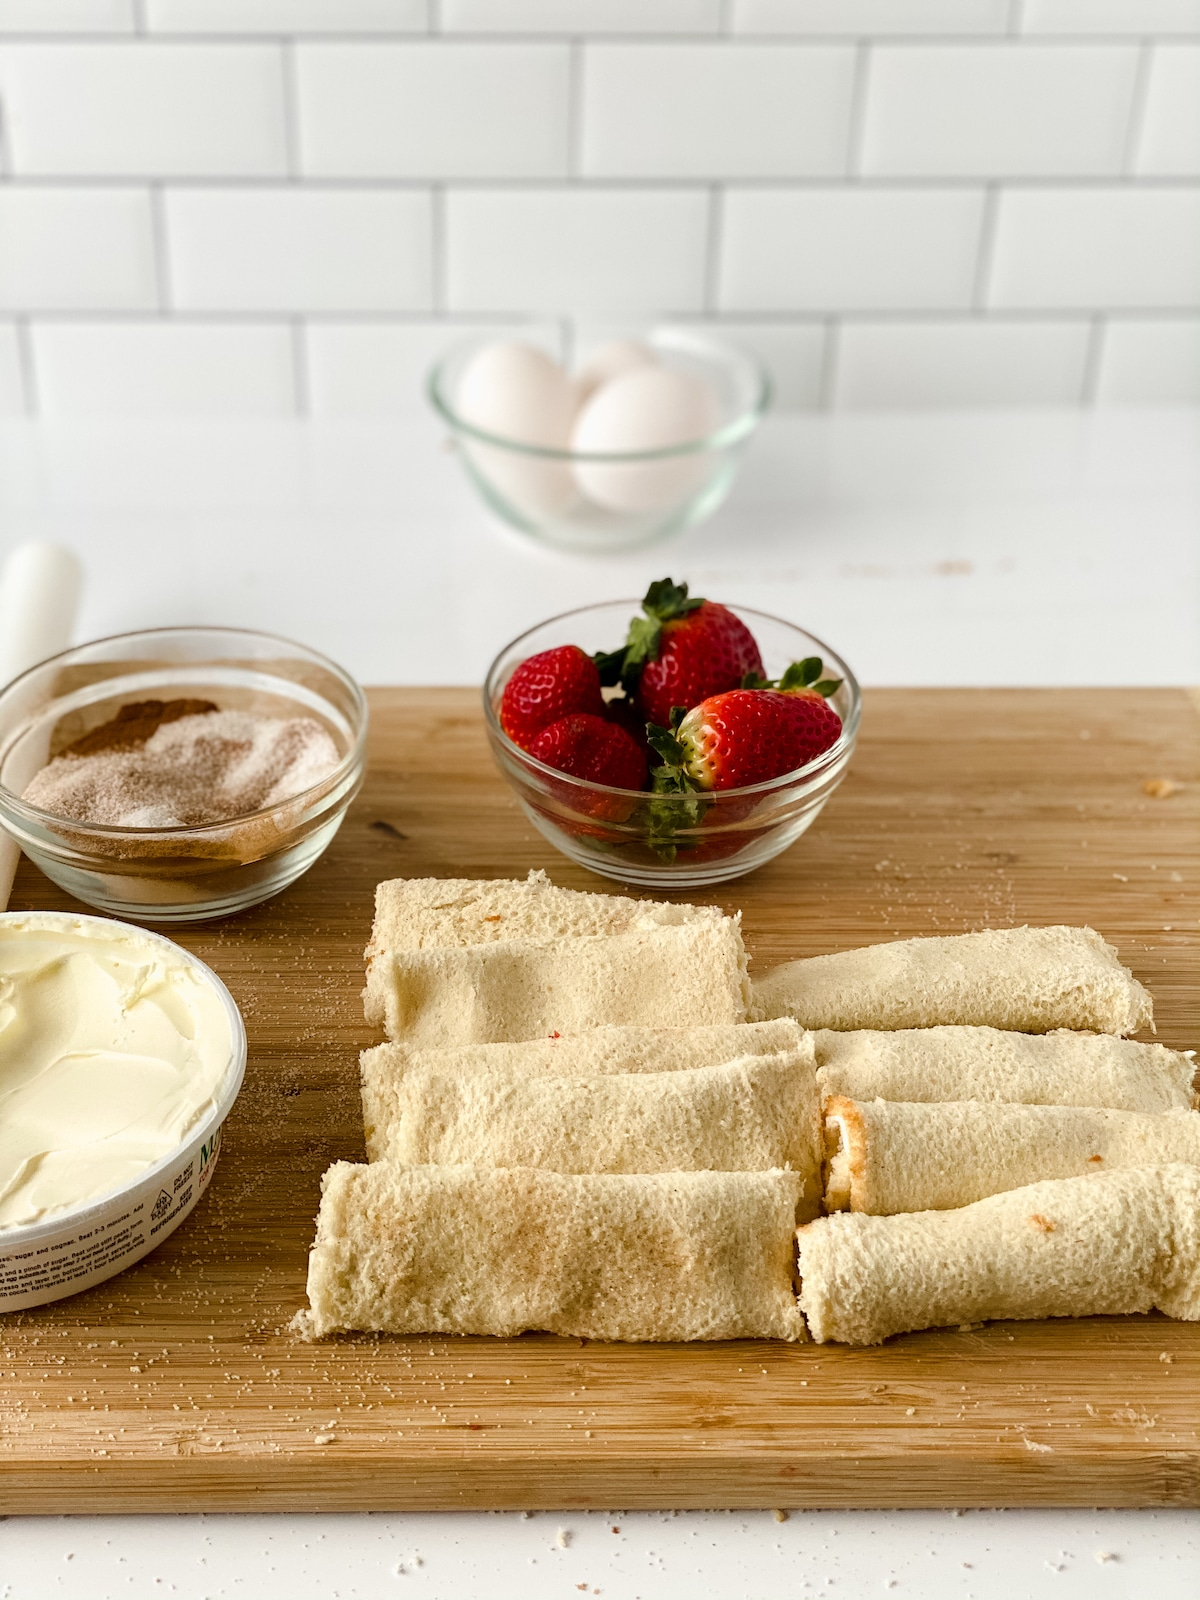 Bread folded into rolls by bowl of strawberries on cutting board